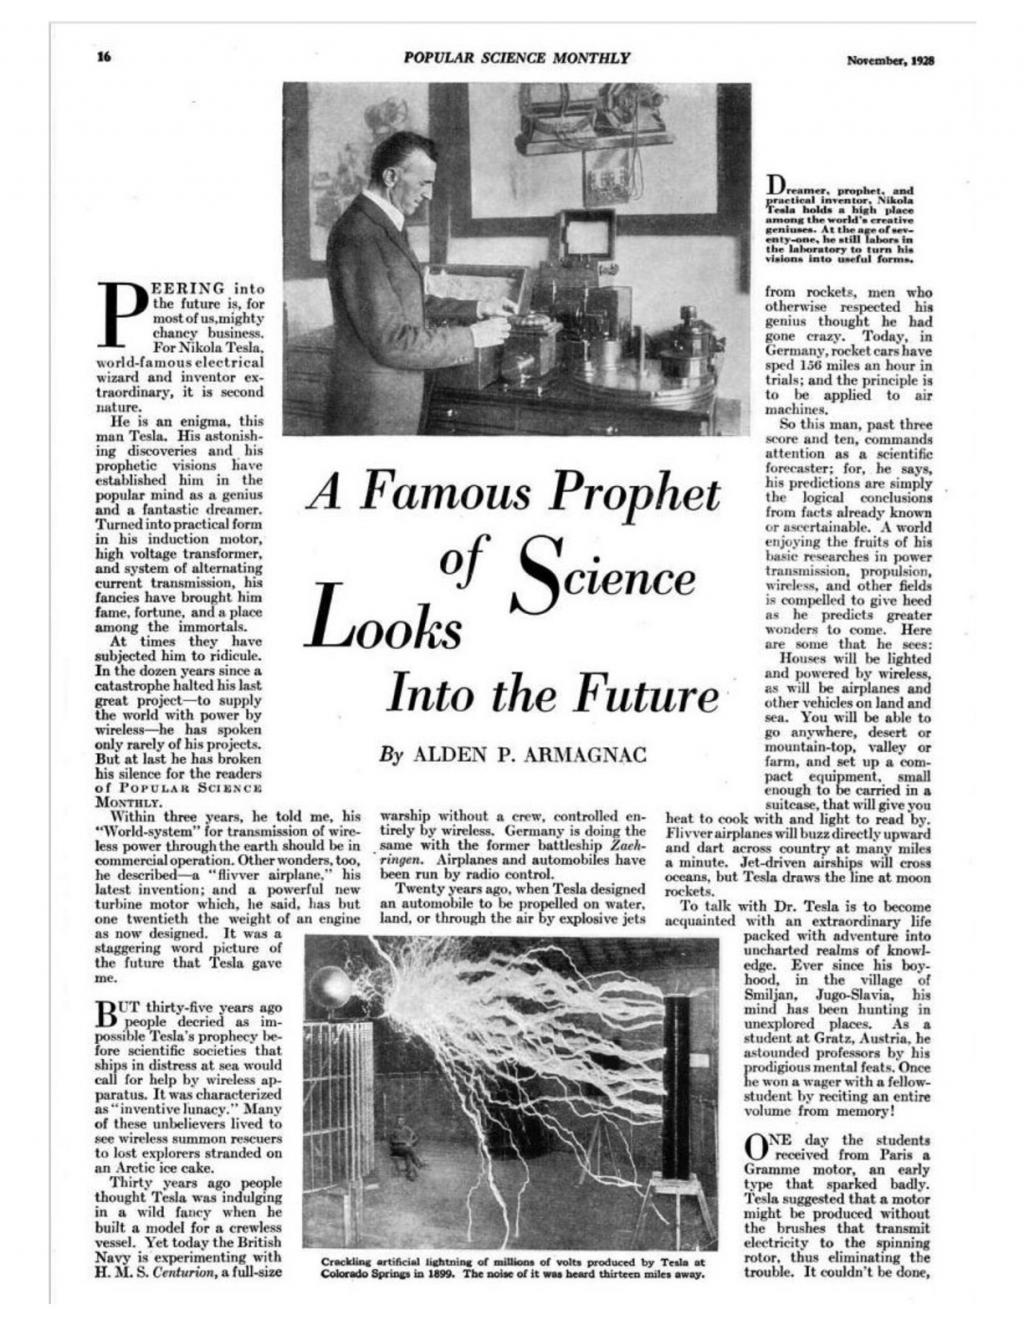 Preview of A Famous Prophet of Science Looks Into the Future article